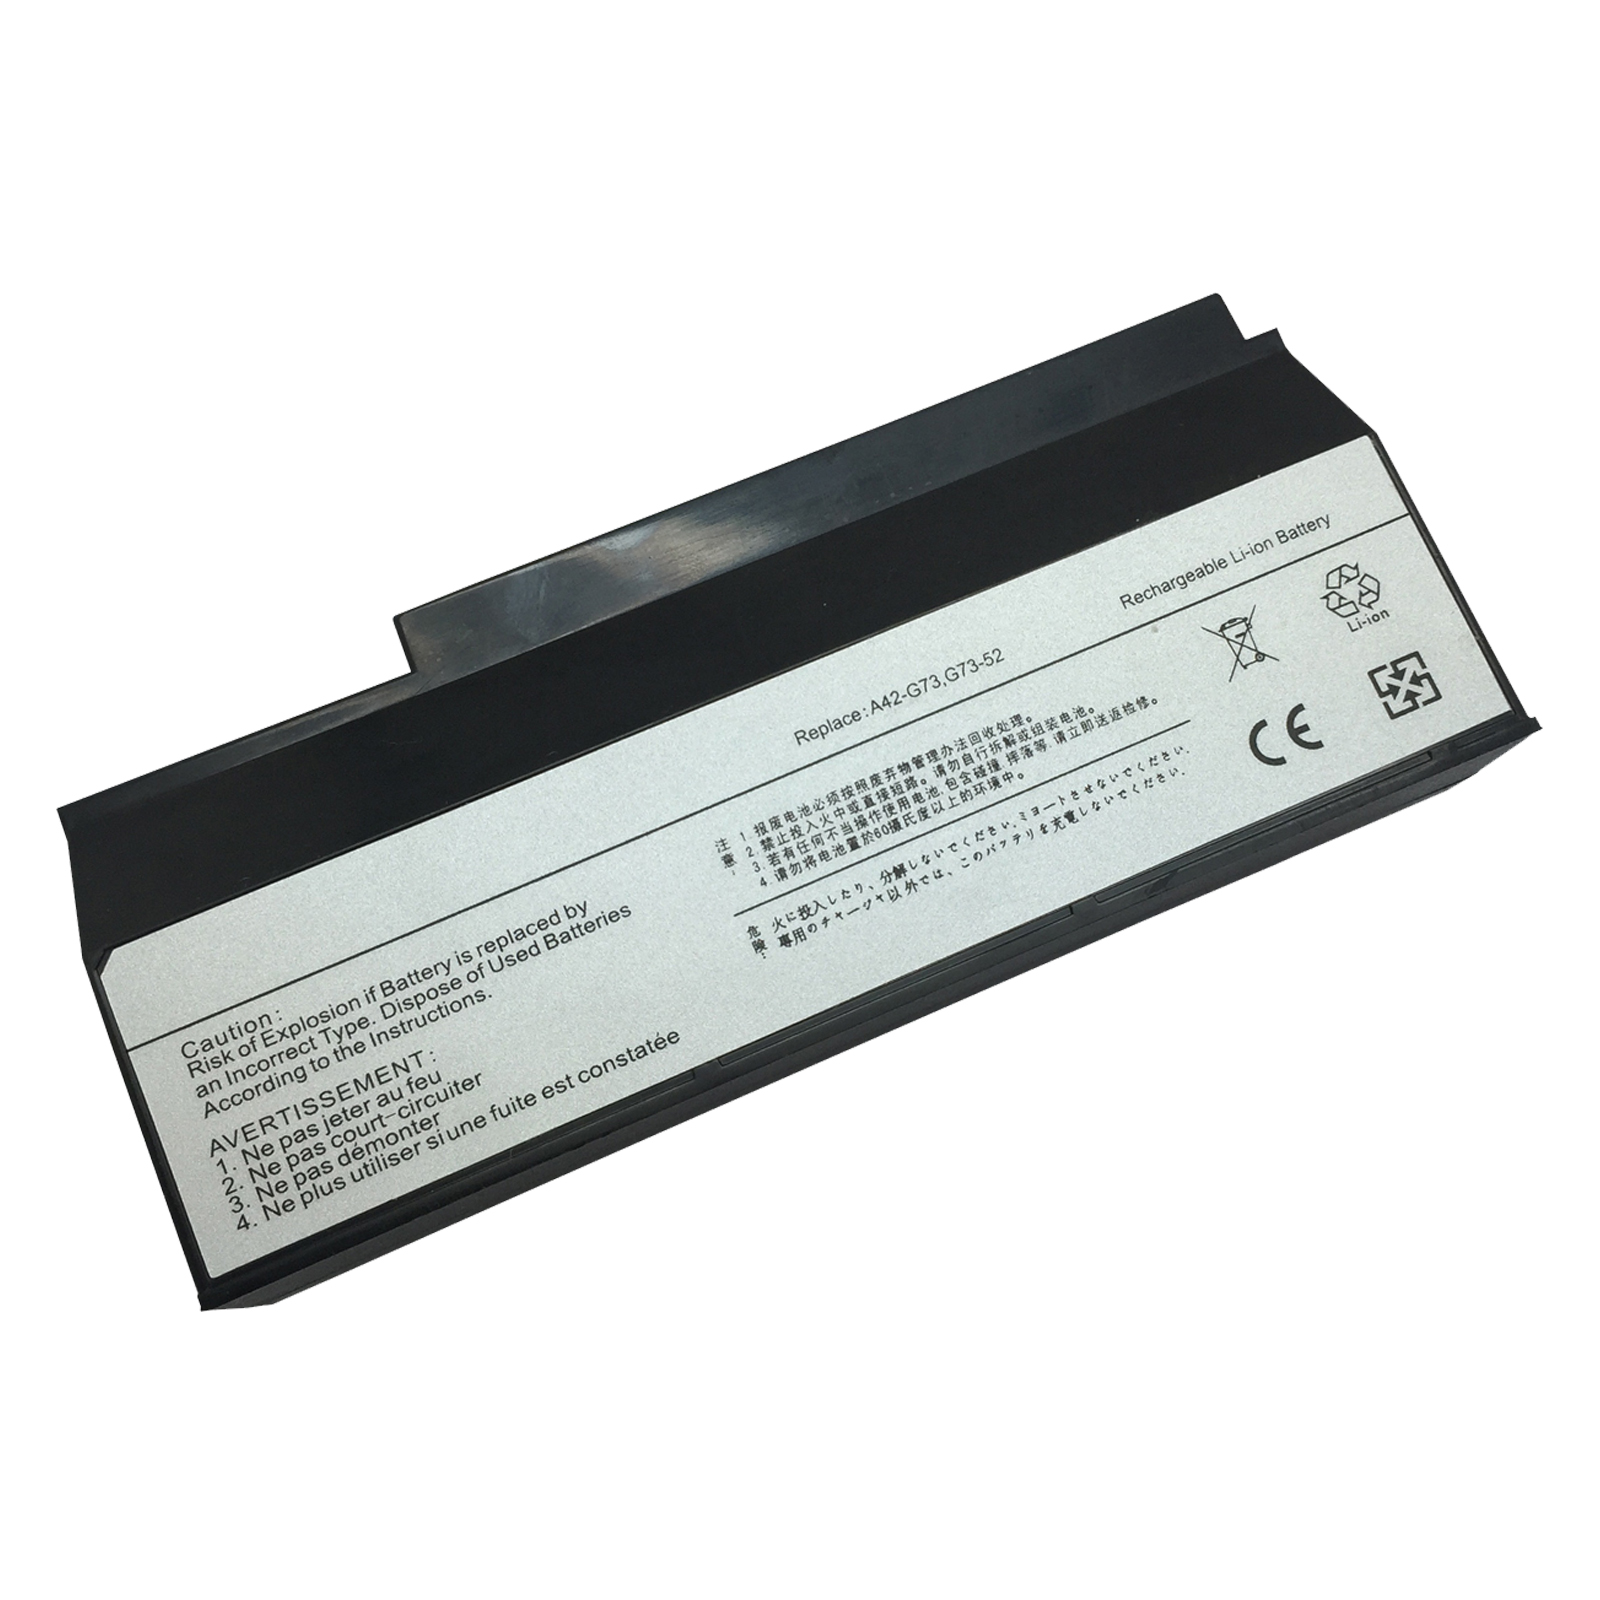 Superb Choice® 8-Cell Battery for ASUS G73J - image 1 of 1